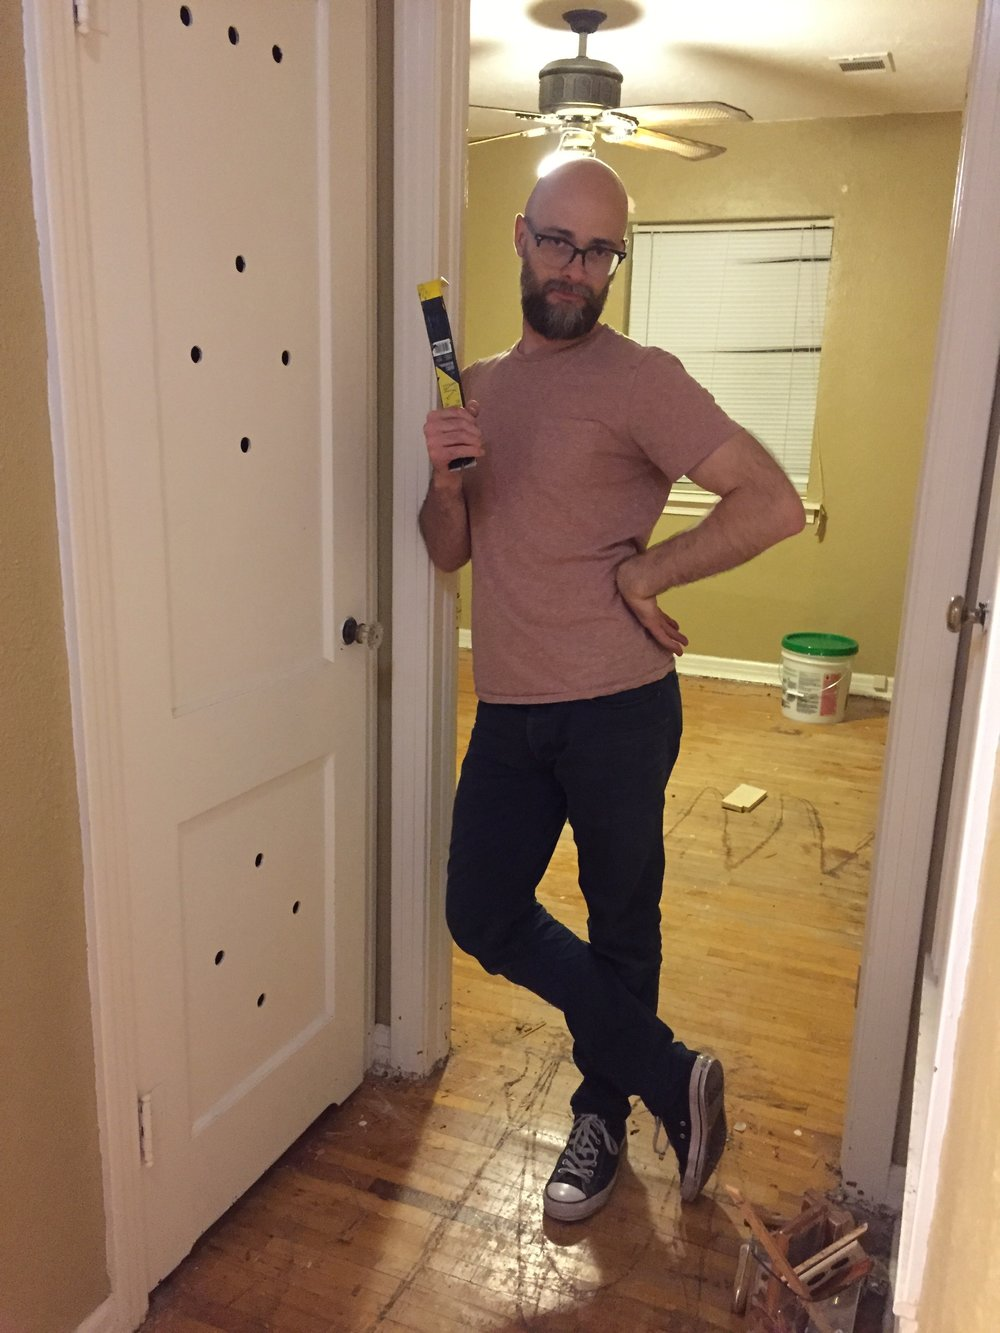 Jordan is standing in the office doorway shortly after we took possession. This creepy is-there-an-animal-in-there closet door opened into a shallow closet that held…